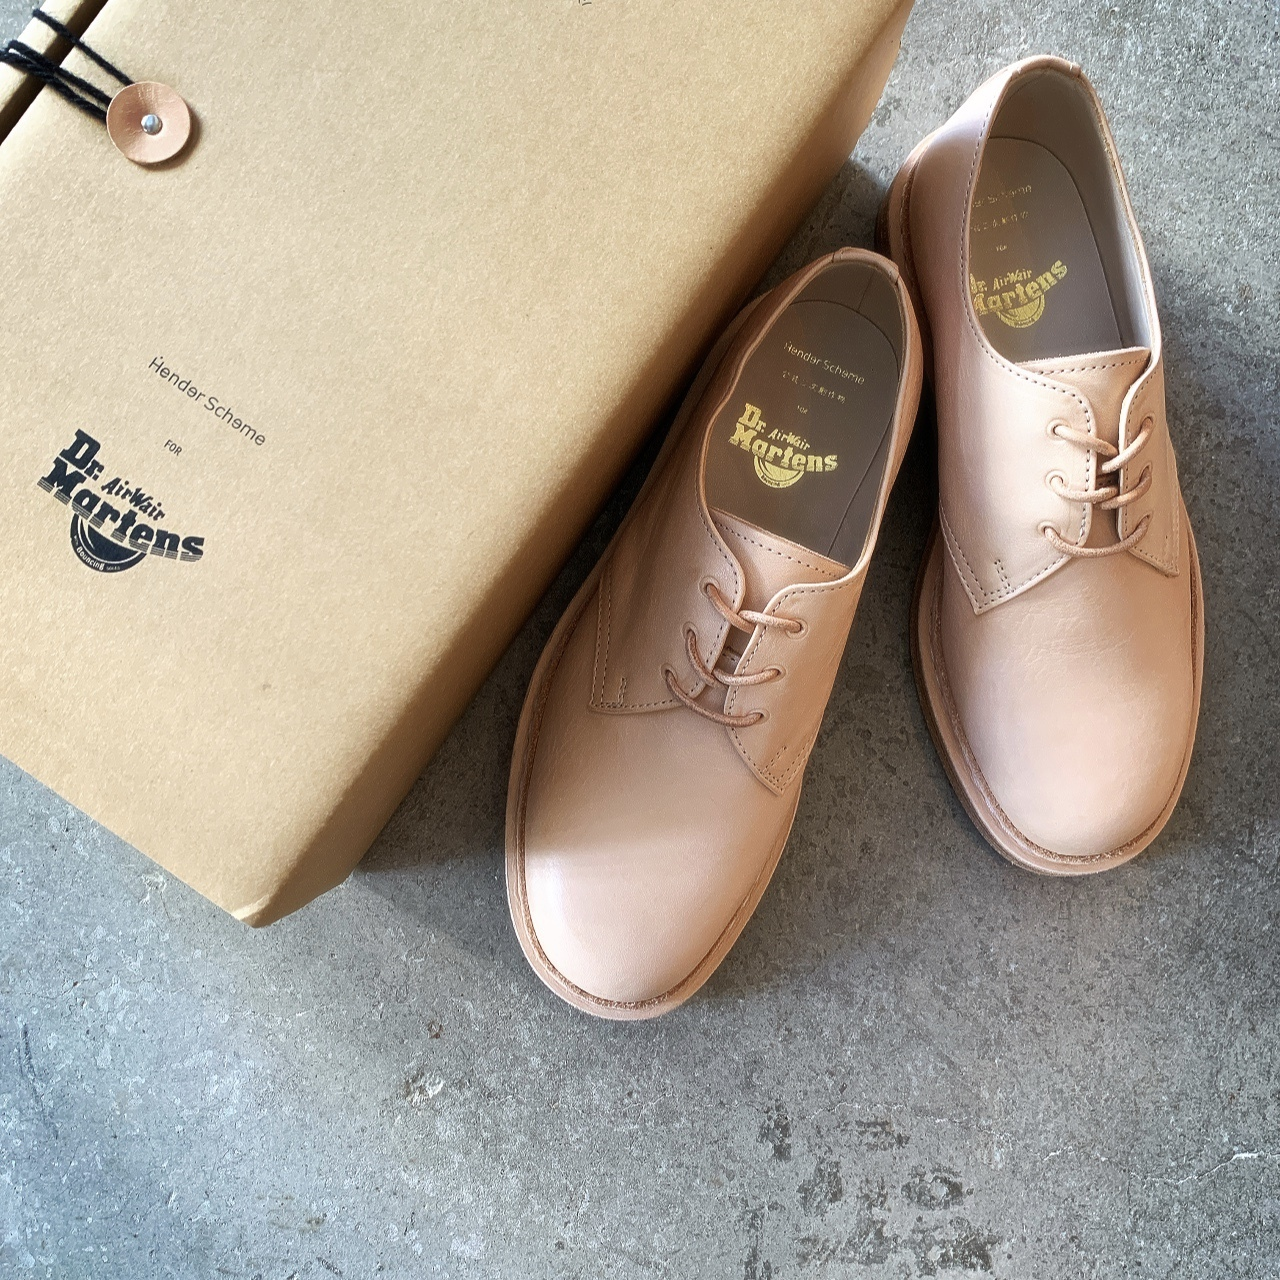 Hender Scheme - manual industrial products 21